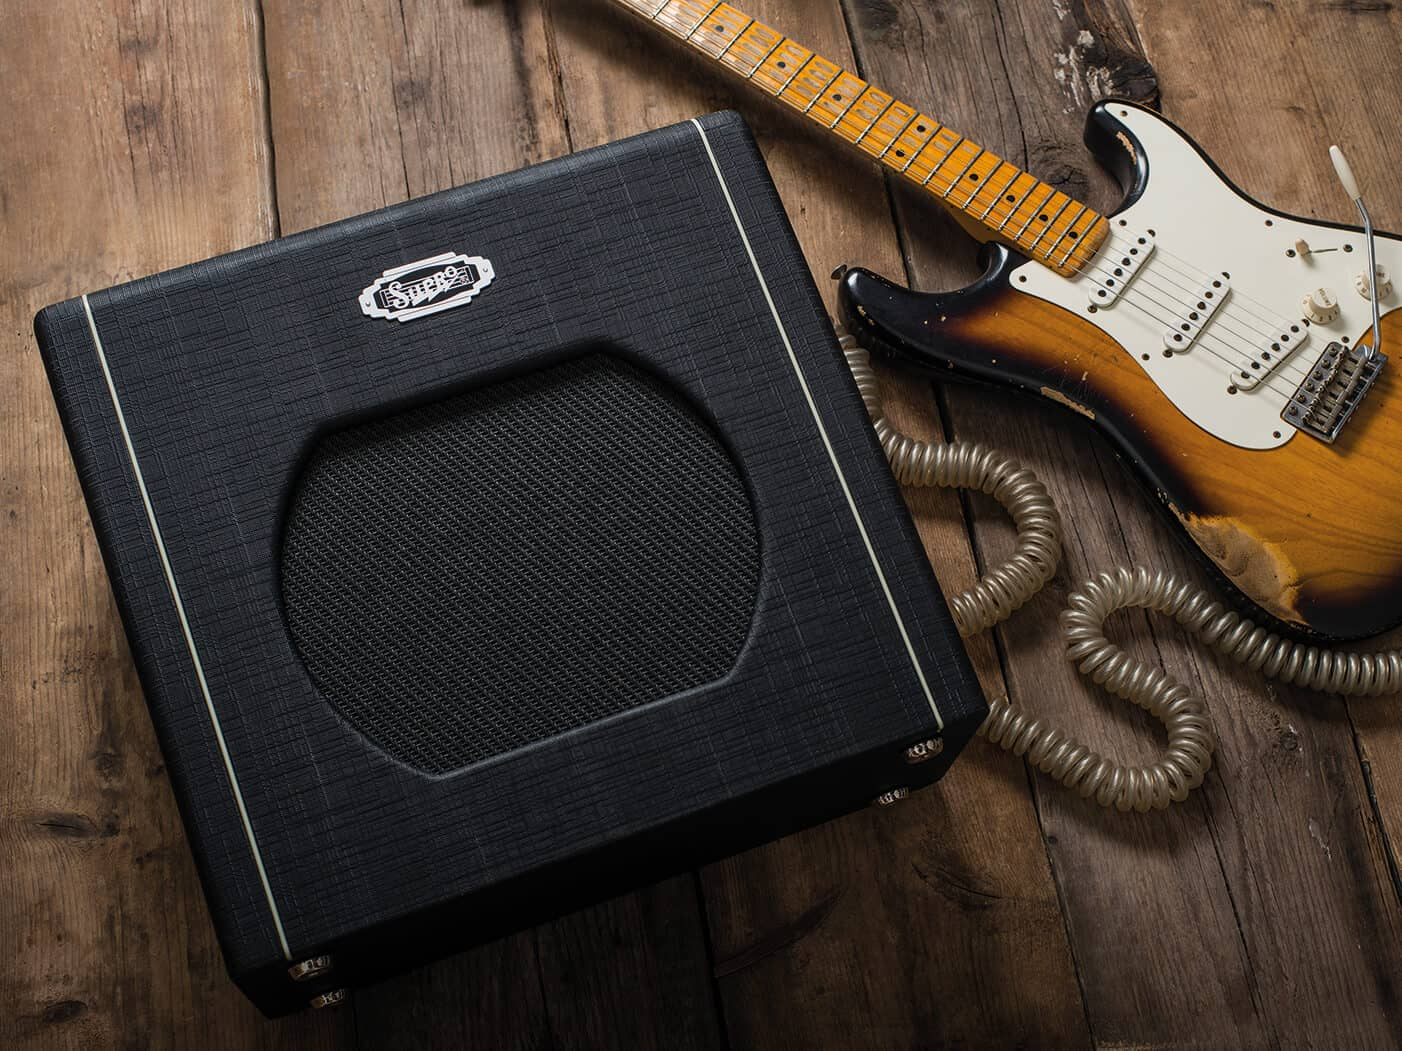 Best Beginner Bass Amp